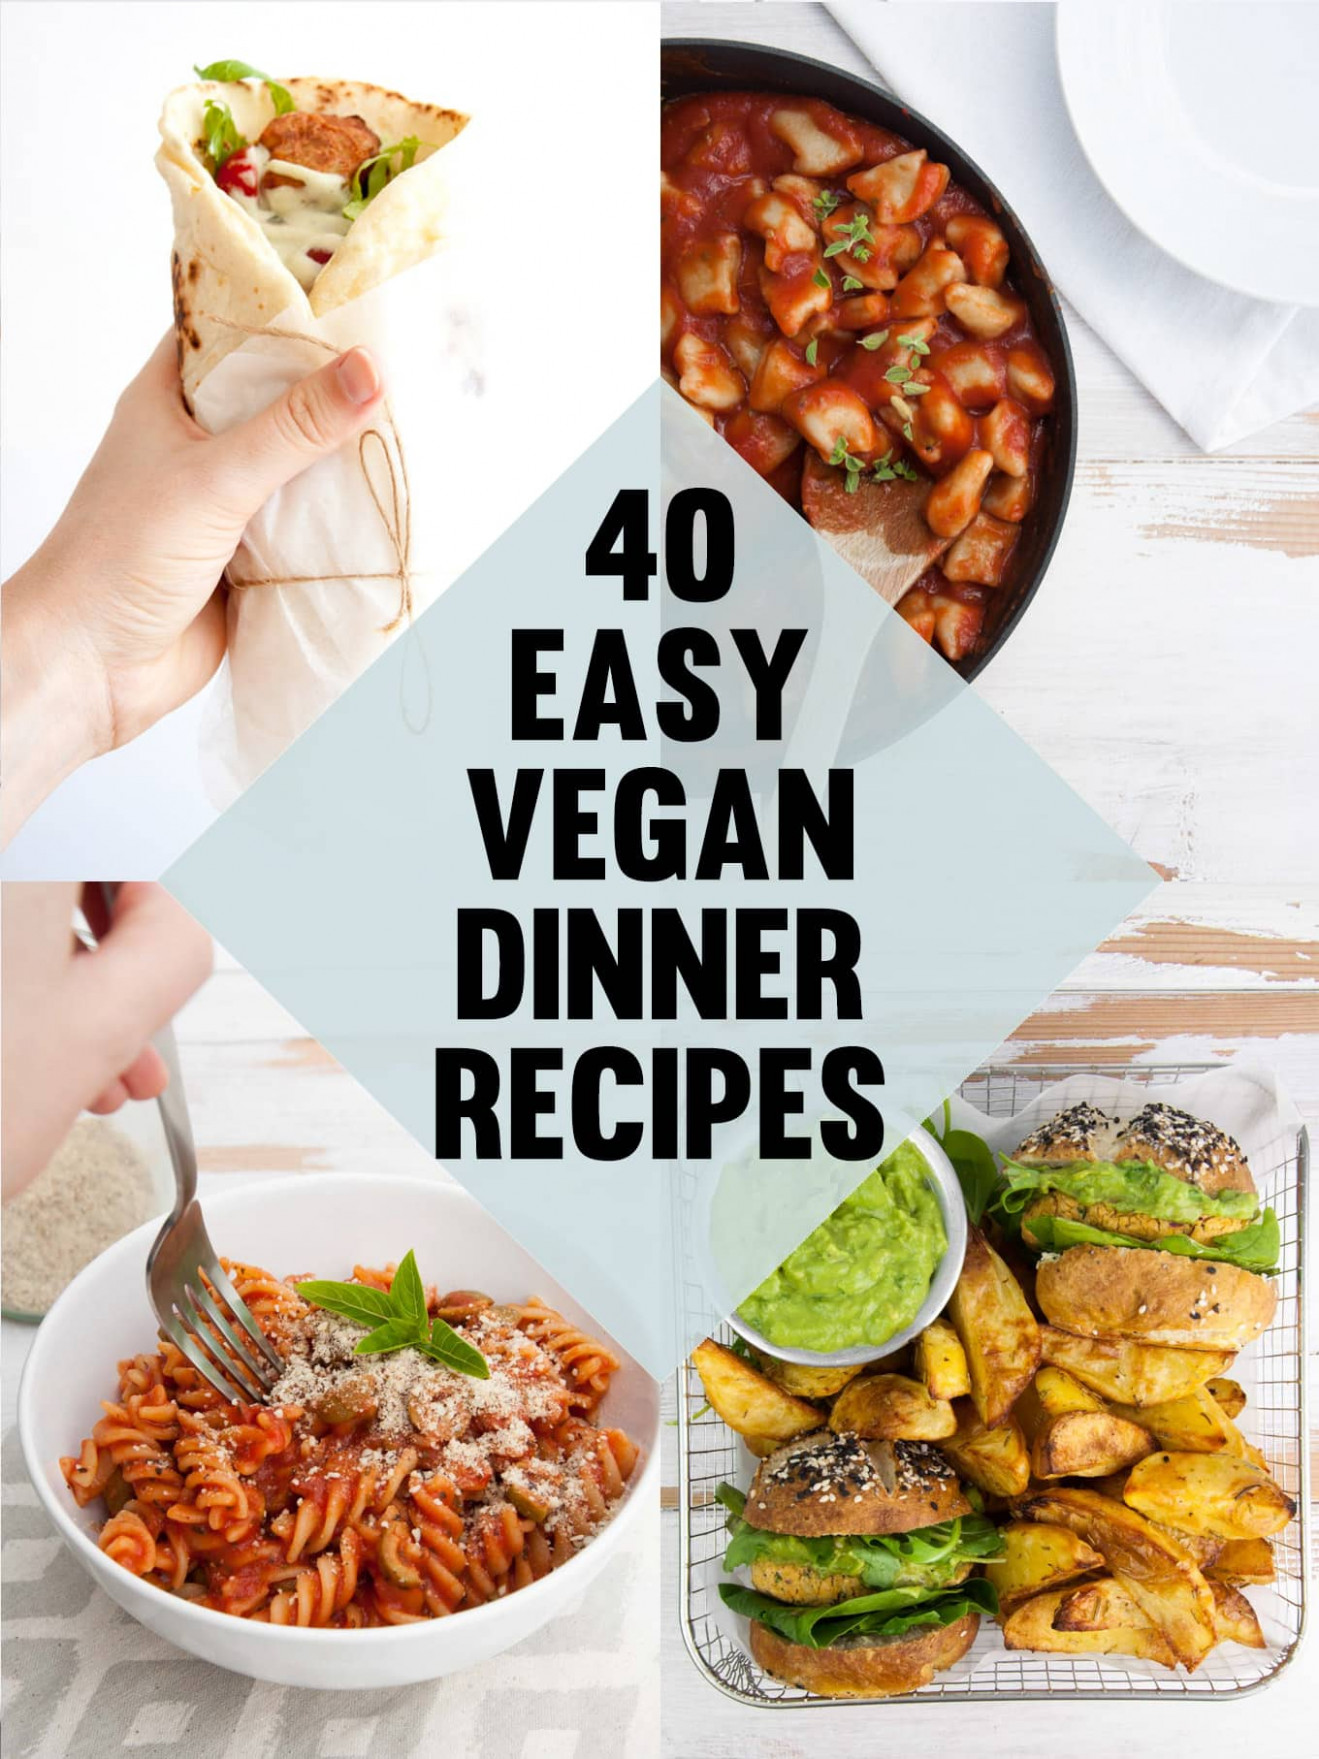 40 Easy Vegan Dinner Recipes | Elephantastic Vegan - Recipes Dinner